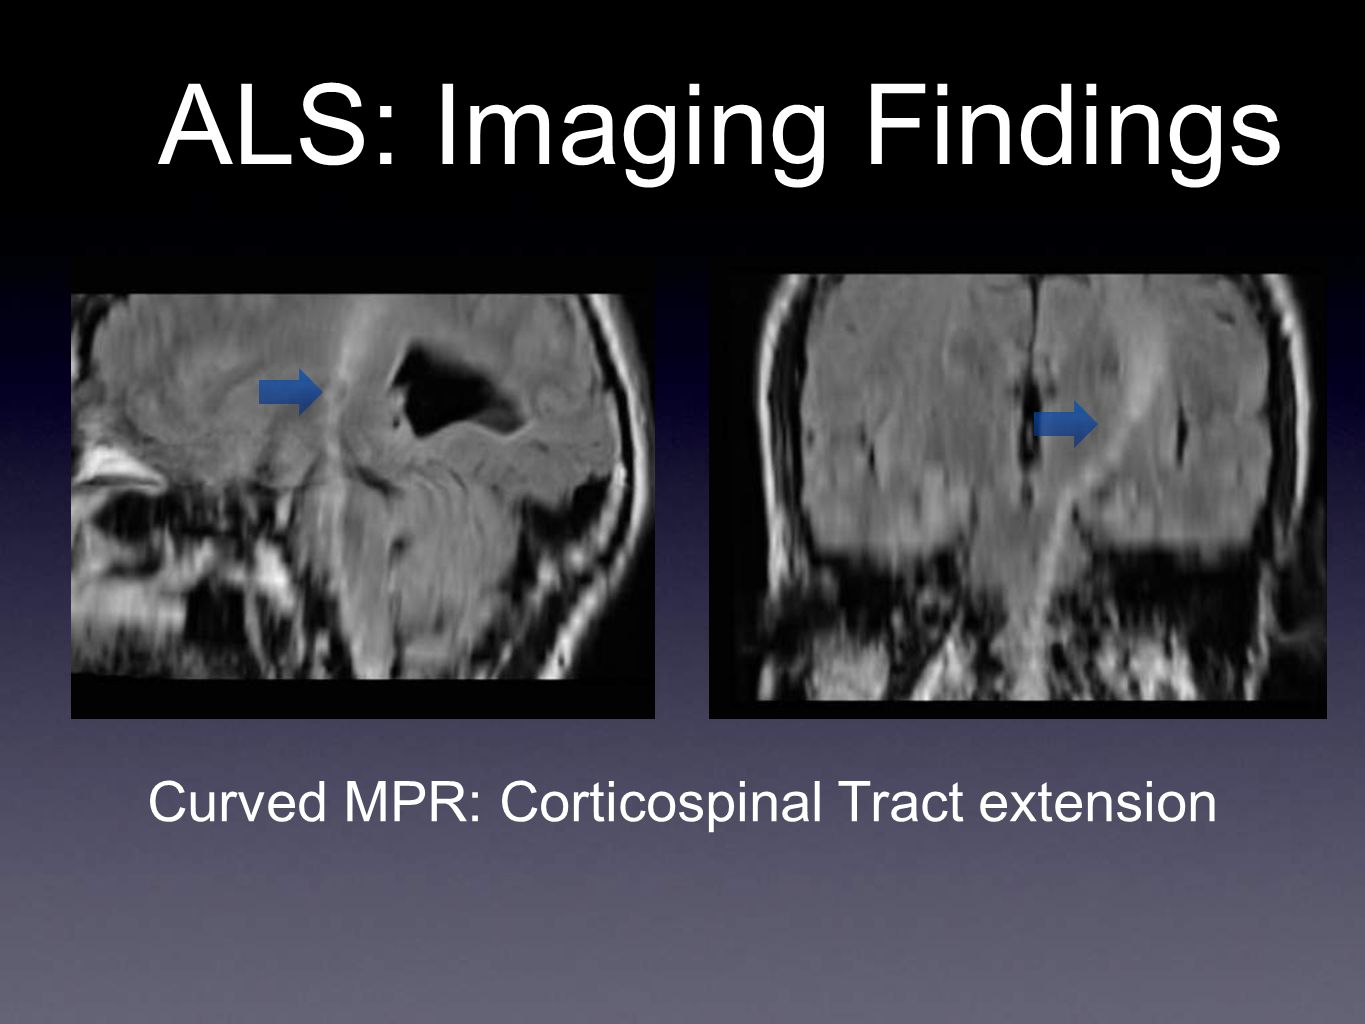 Curved MPR: Corticospinal Tract extension